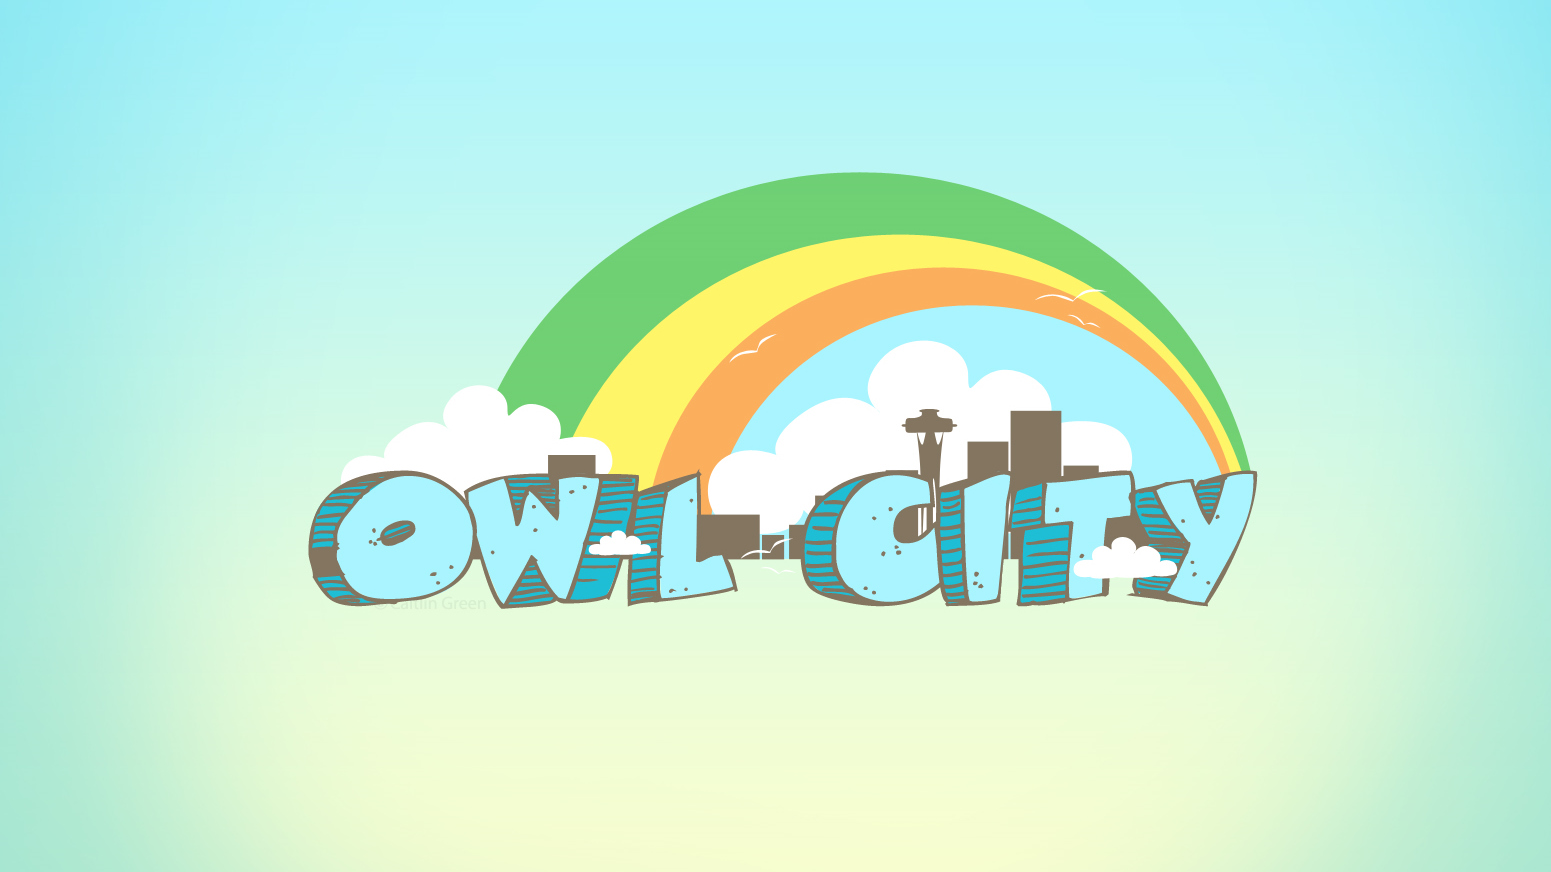 Owl city vanilla twilight album